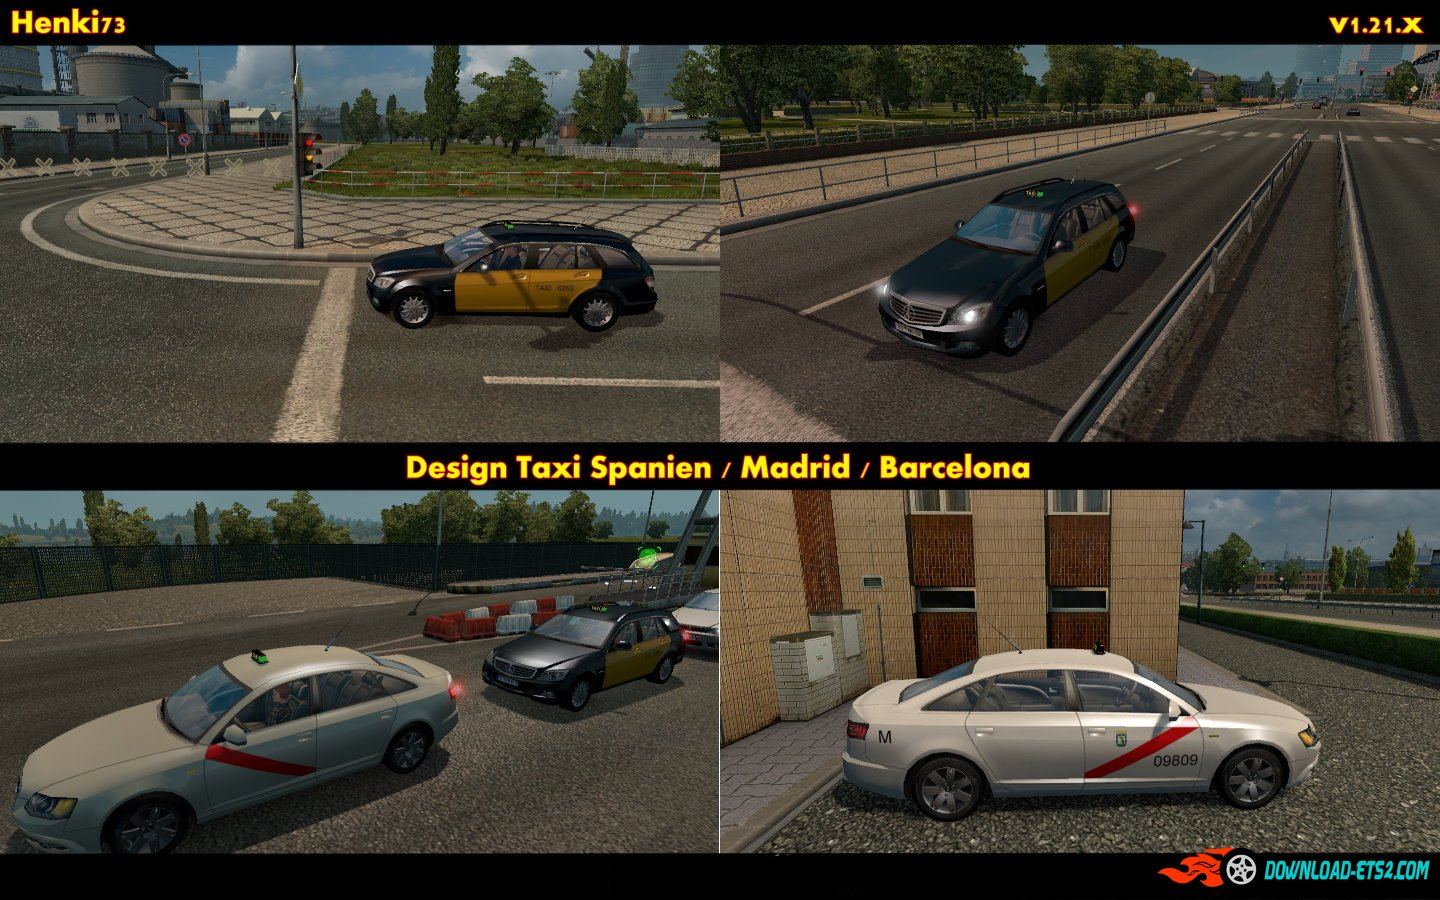 Spanish Taxi in AI Traffic